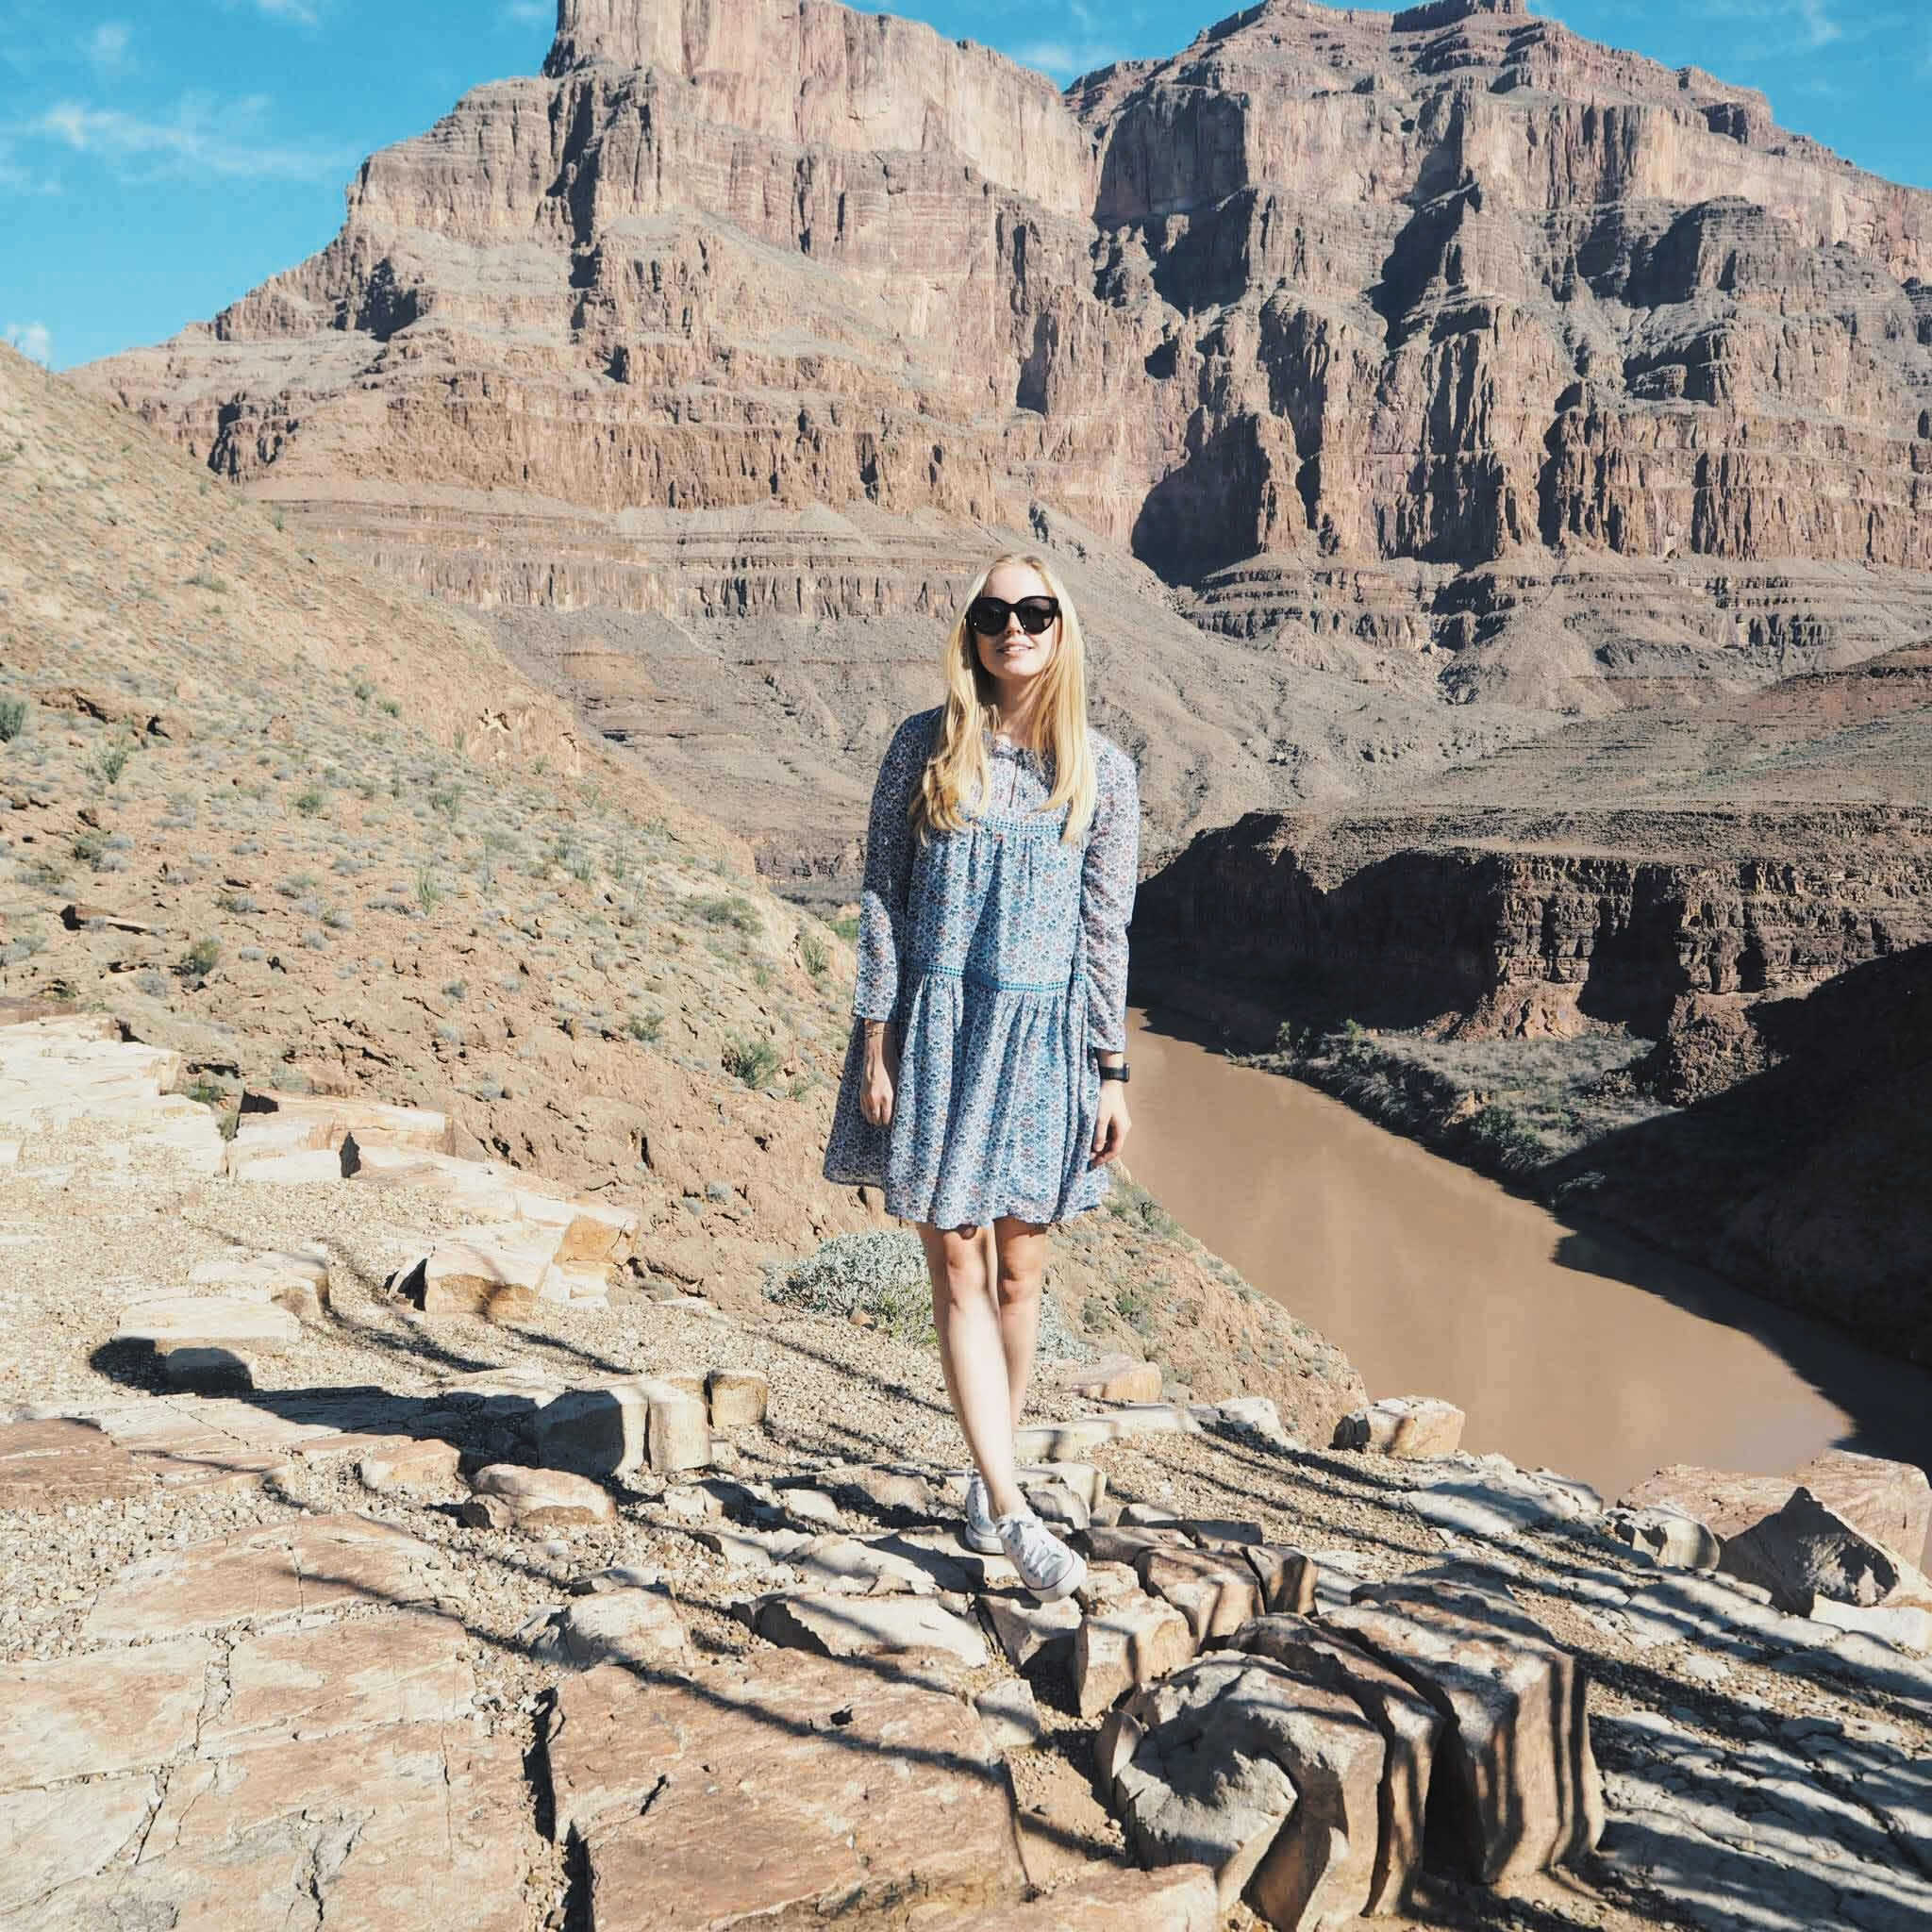 Grand Canyon photo diary via www.styleplayground.com